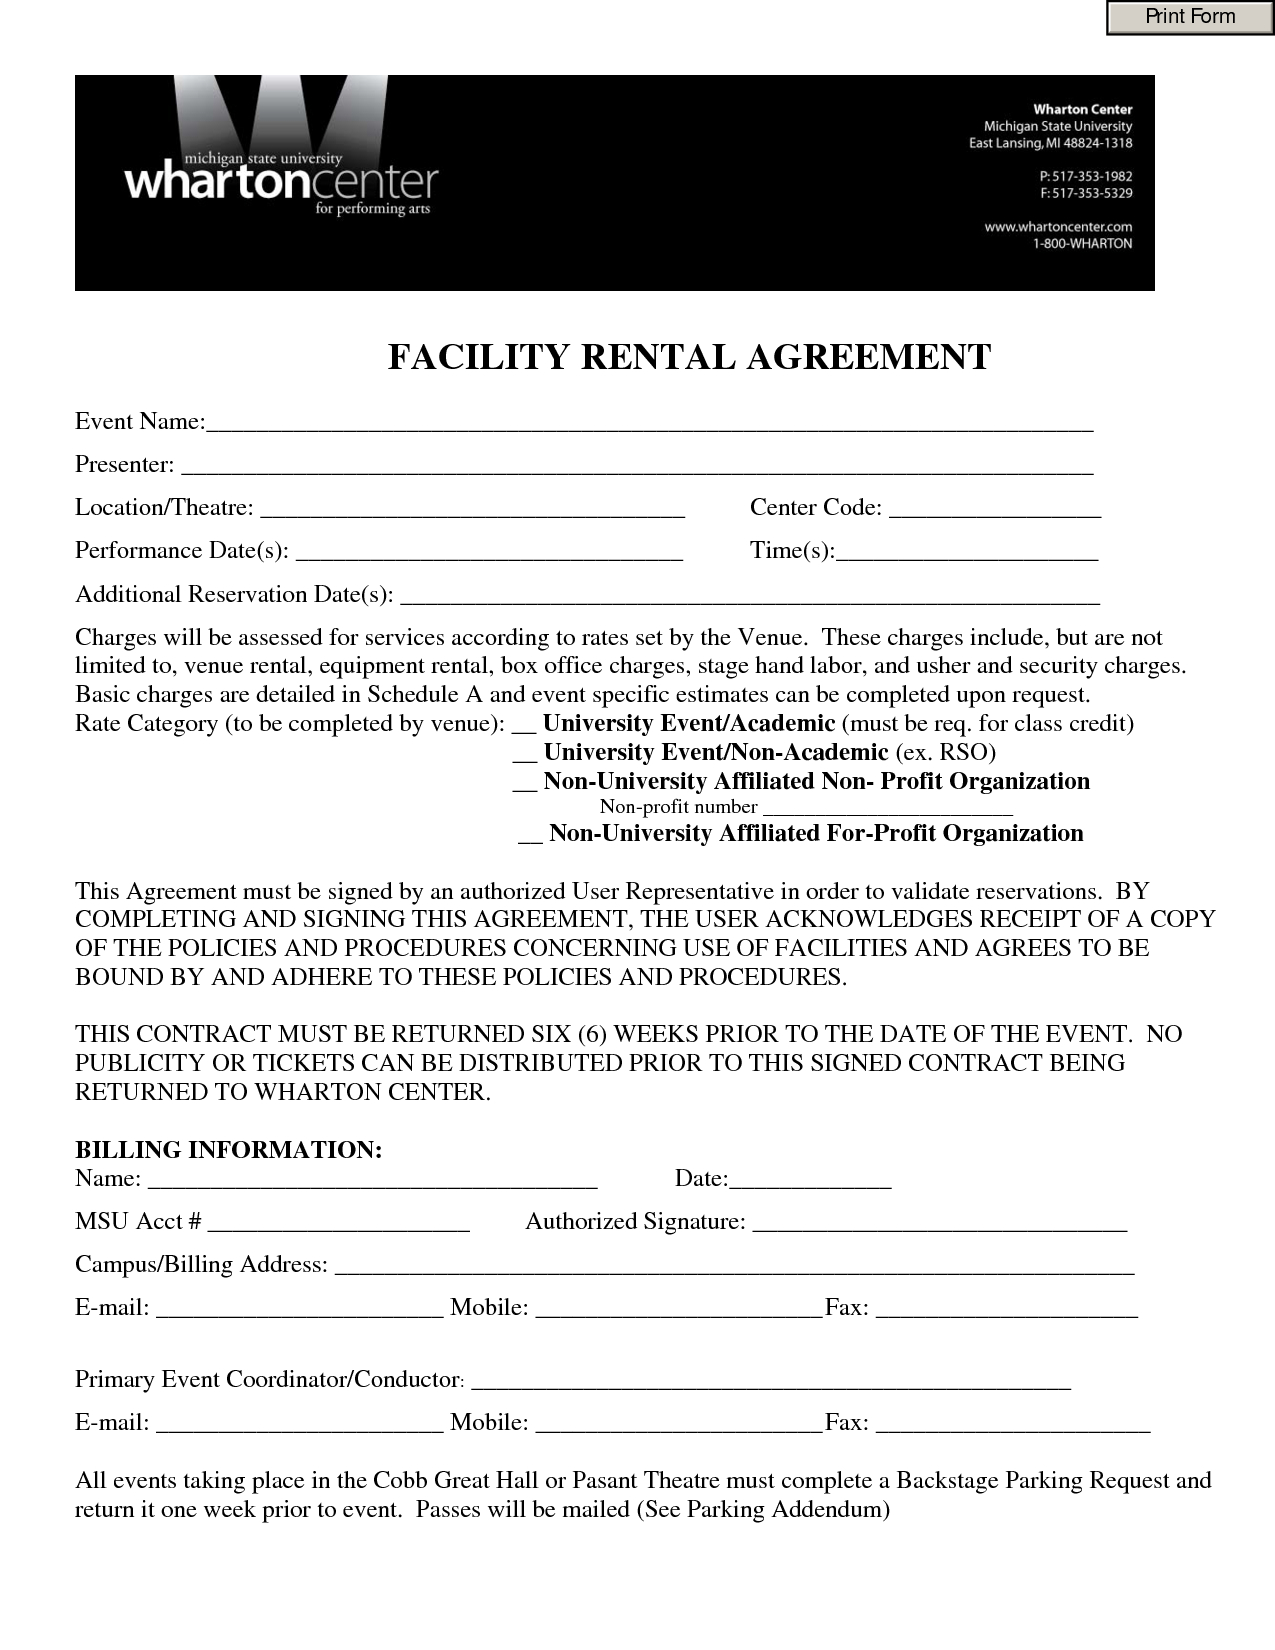 Event Contract Template  Invitation Templates  Facility Rental Intended For Bounce House Rental Agreement Template